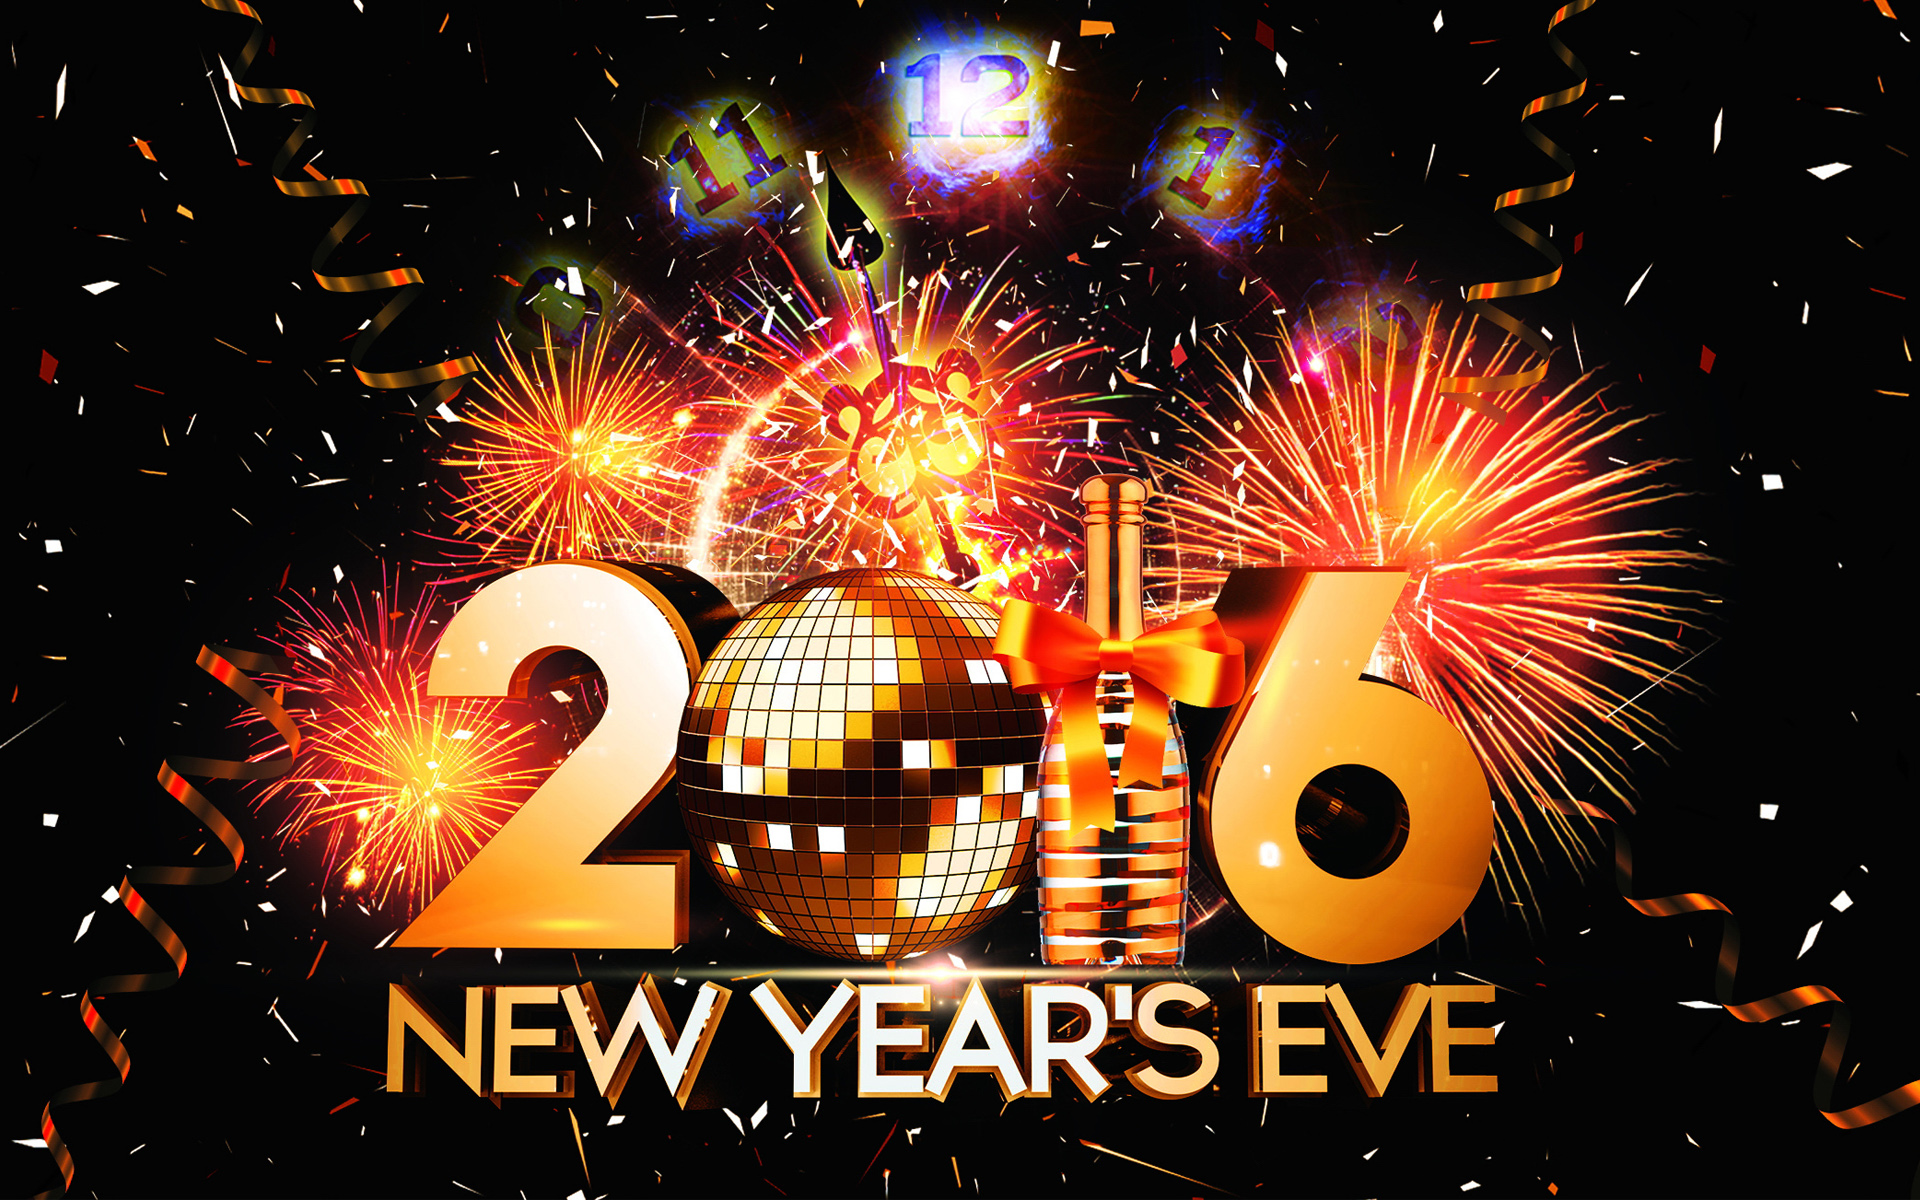 2016 New Year Eve Wallpapers HD Wallpapers 1920x1200